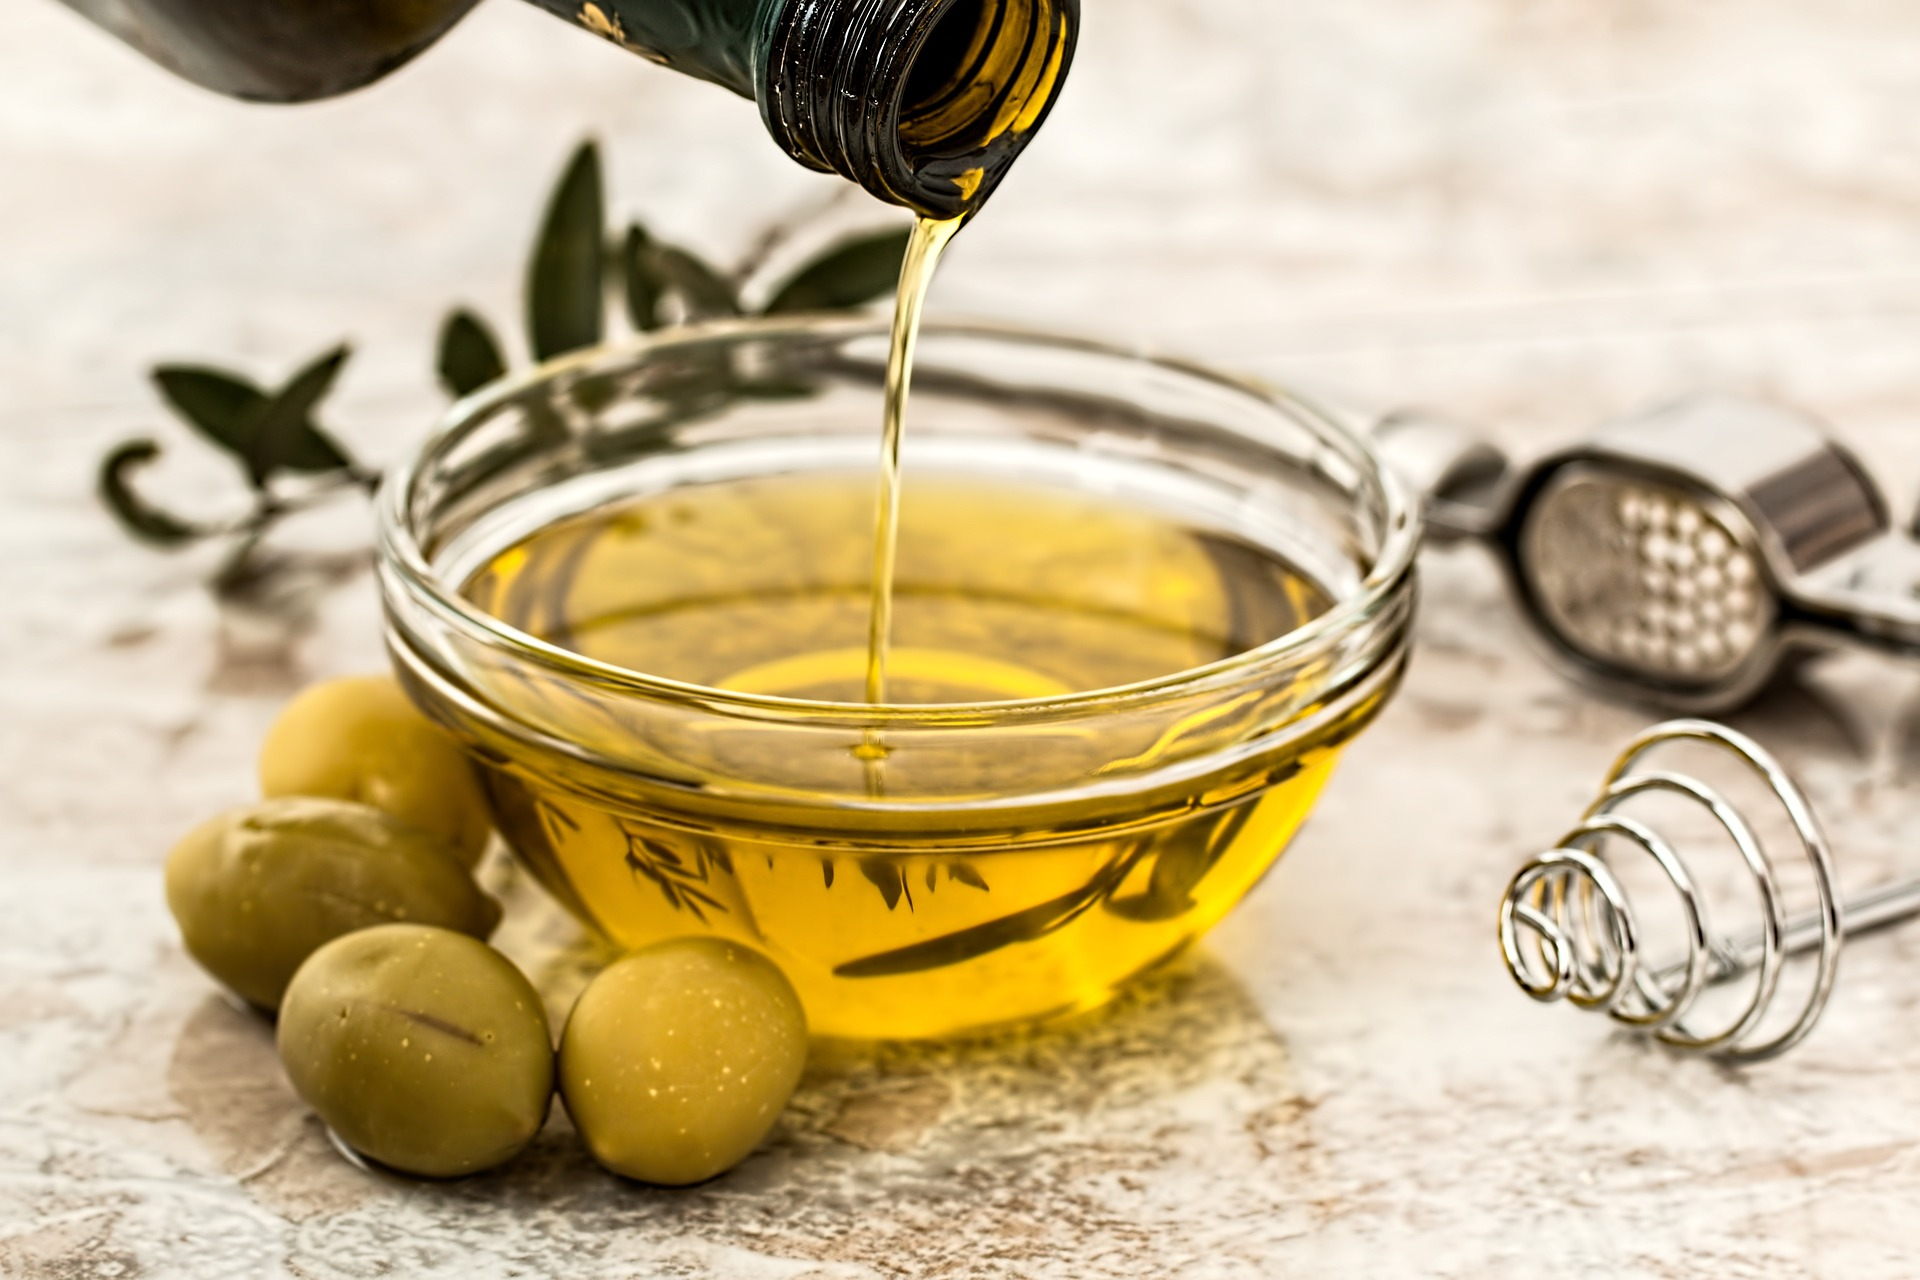 olive oil in a glass next to olives